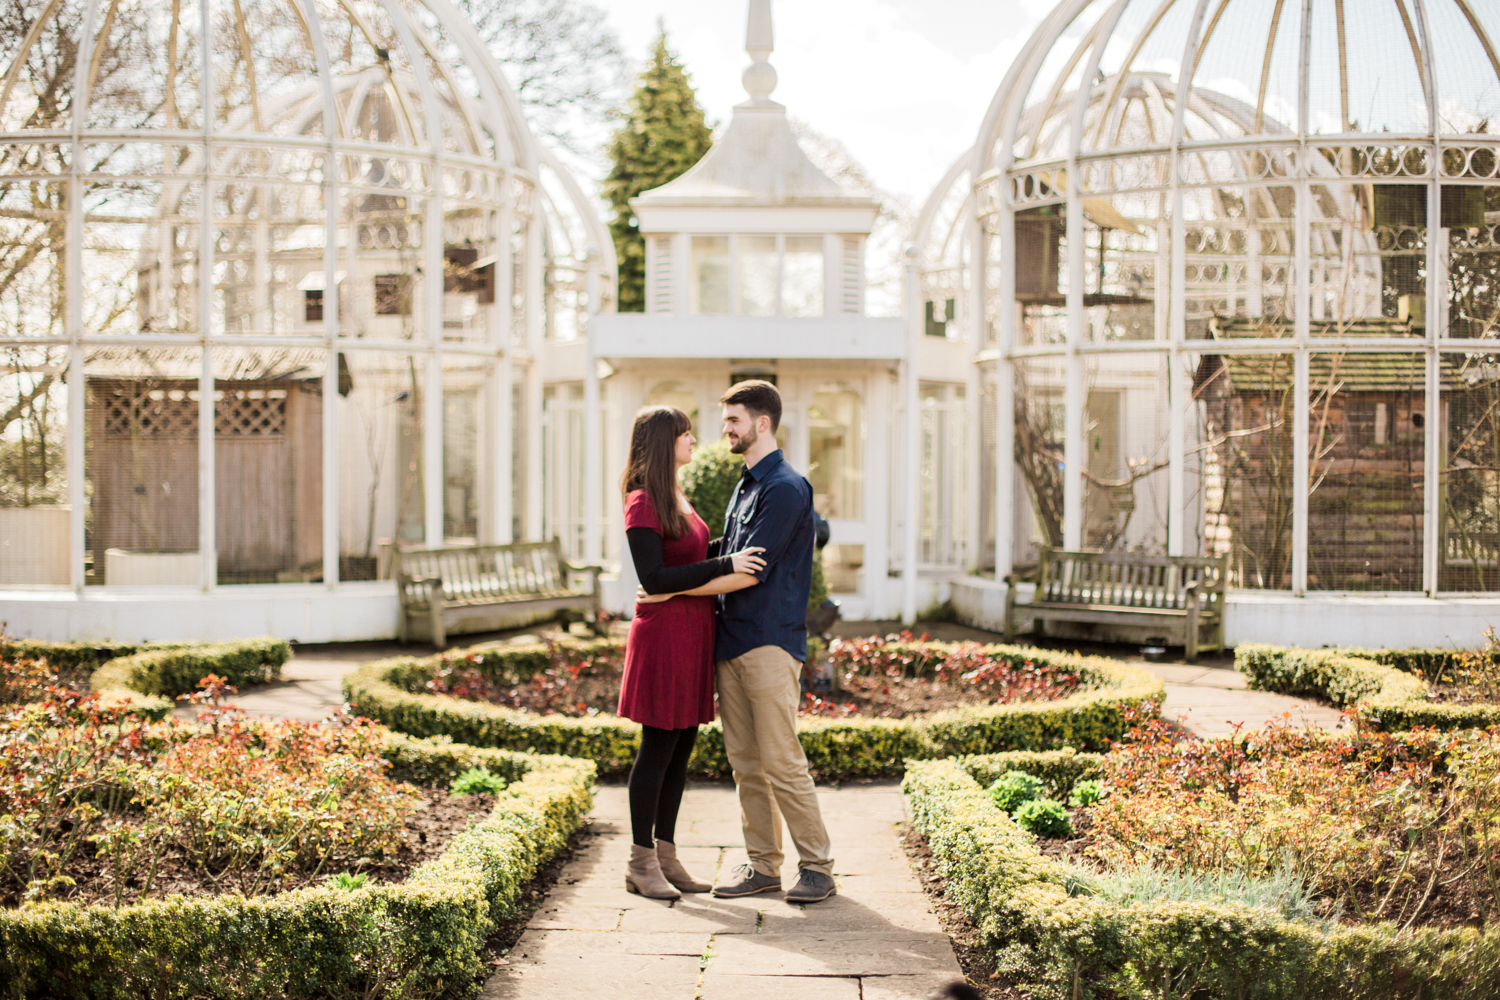 Sophie Evans Photography, Alice & Nathanael Botanical Gardens Engagement Shoot. Warwickshire Wedding Photographer (12).jpg